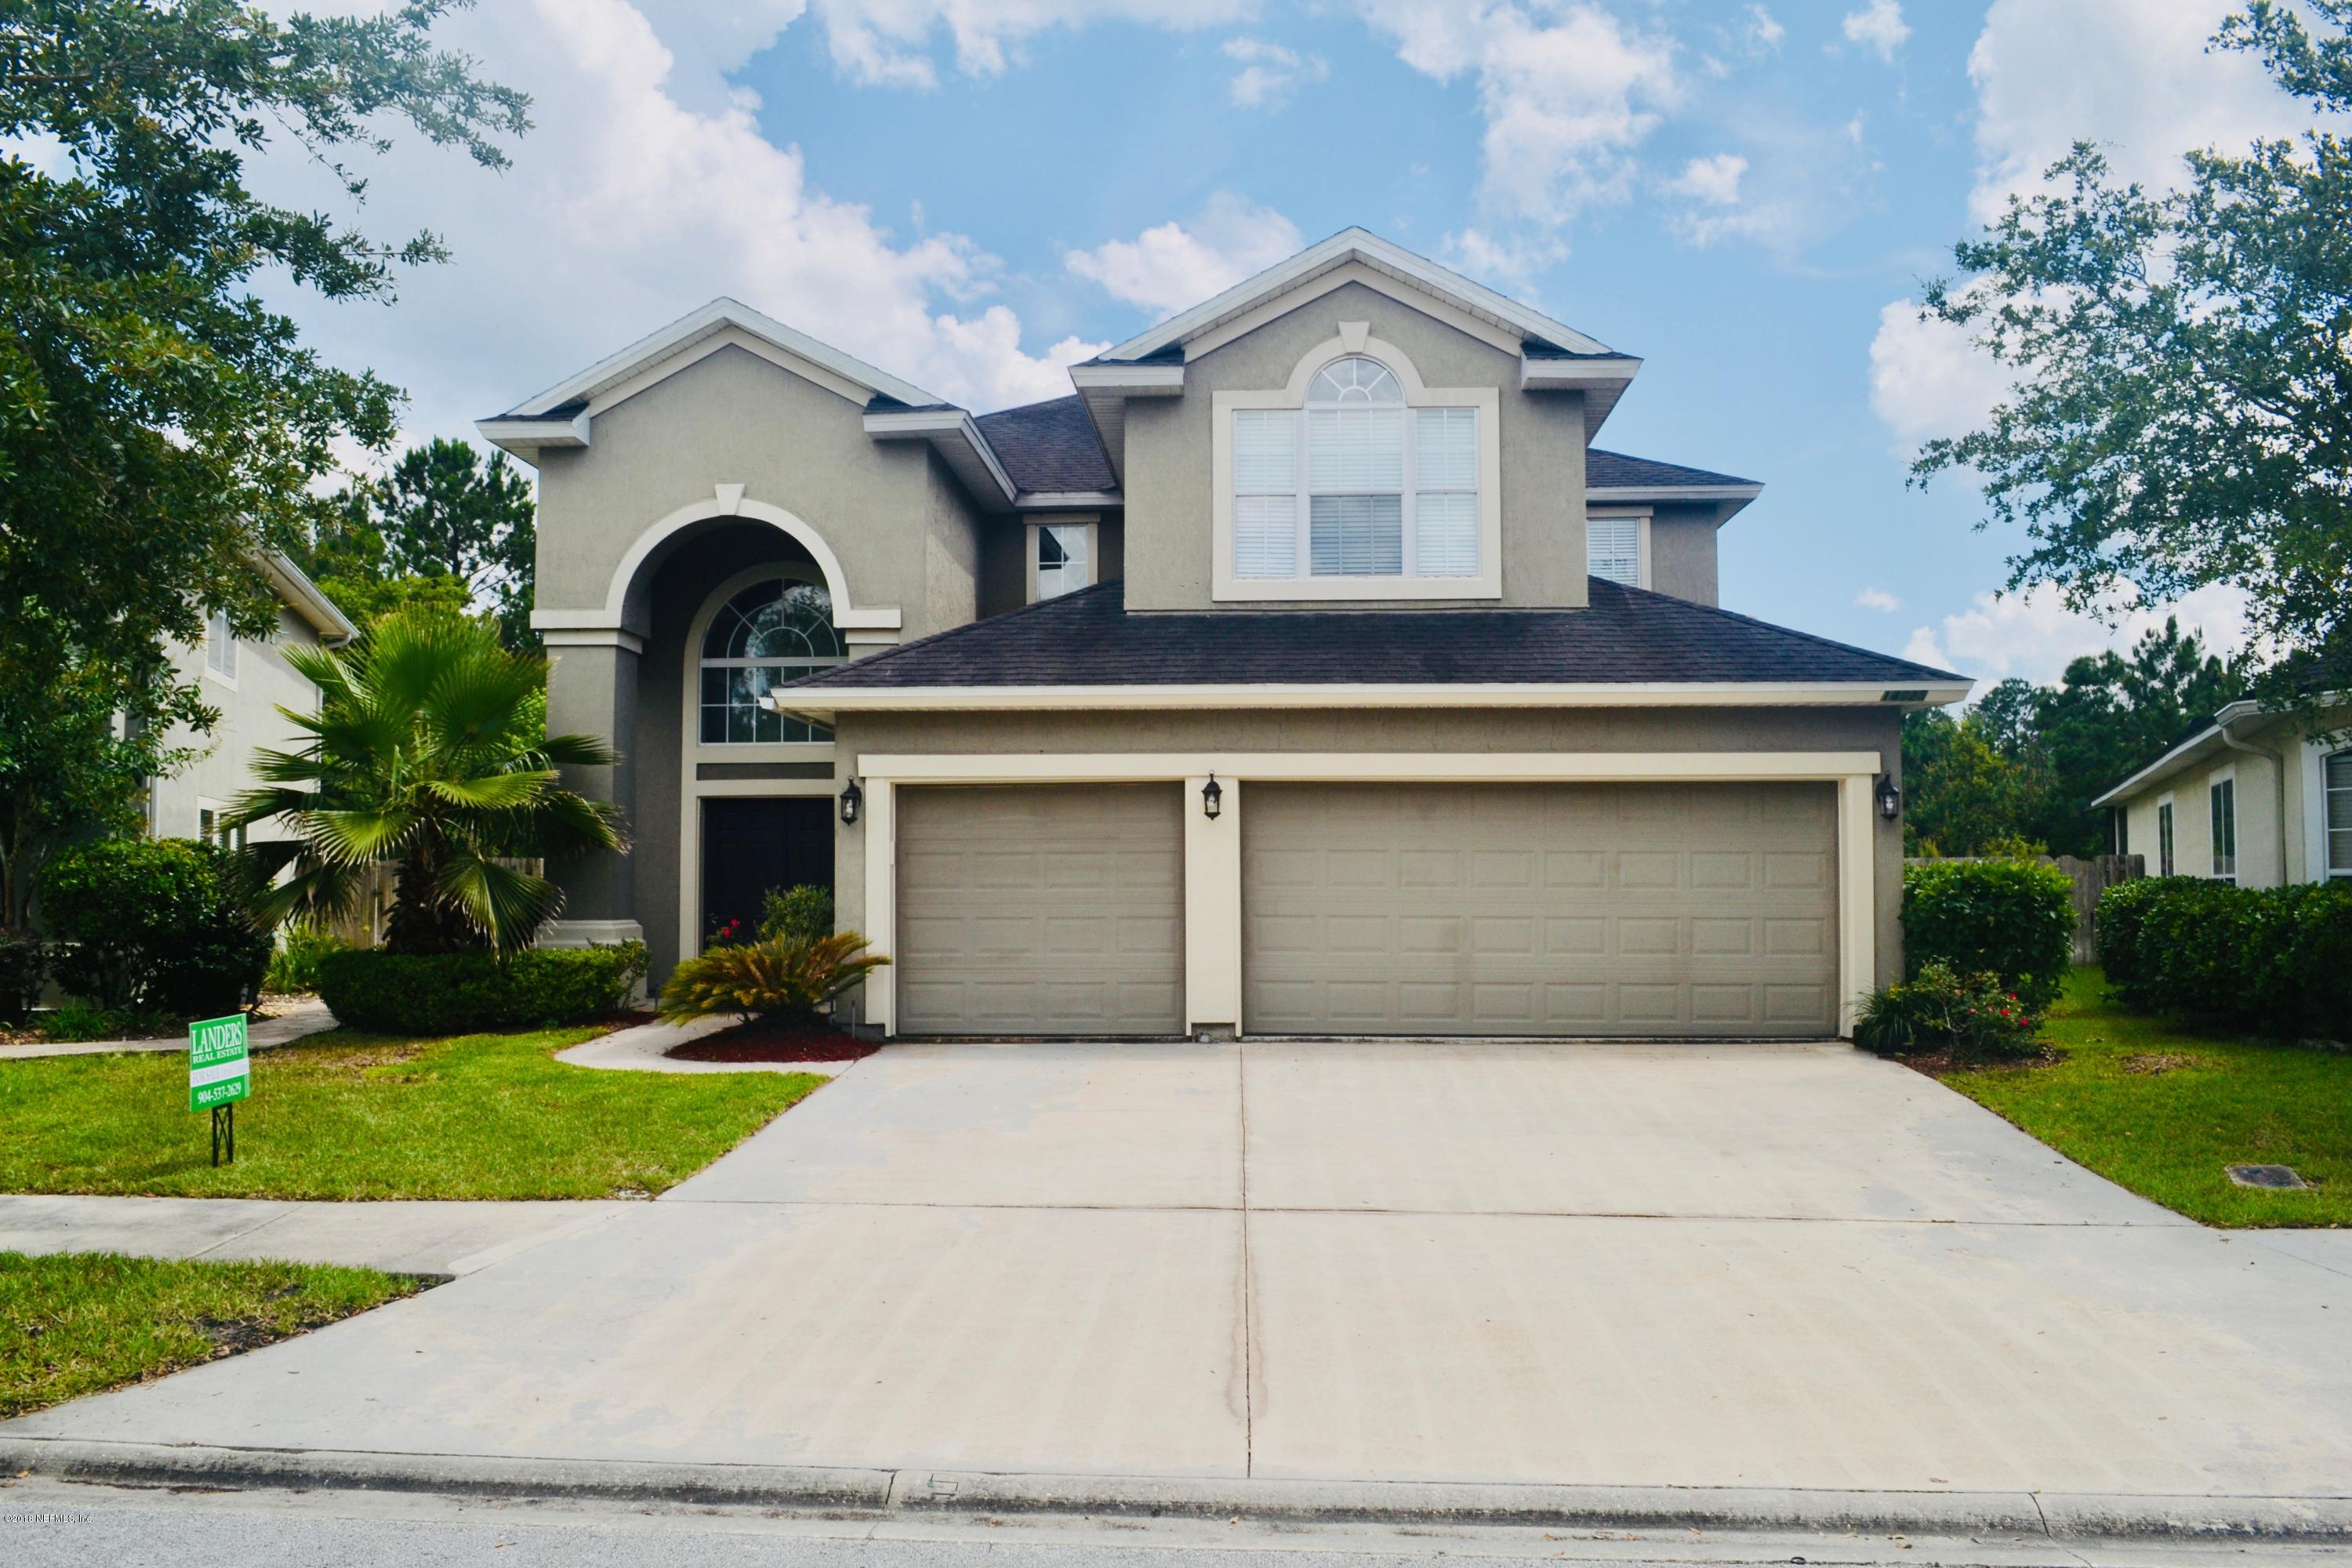 14925 BULOW CREEK, JACKSONVILLE, FLORIDA 32258, 5 Bedrooms Bedrooms, ,3 BathroomsBathrooms,Residential - single family,For sale,BULOW CREEK,941738